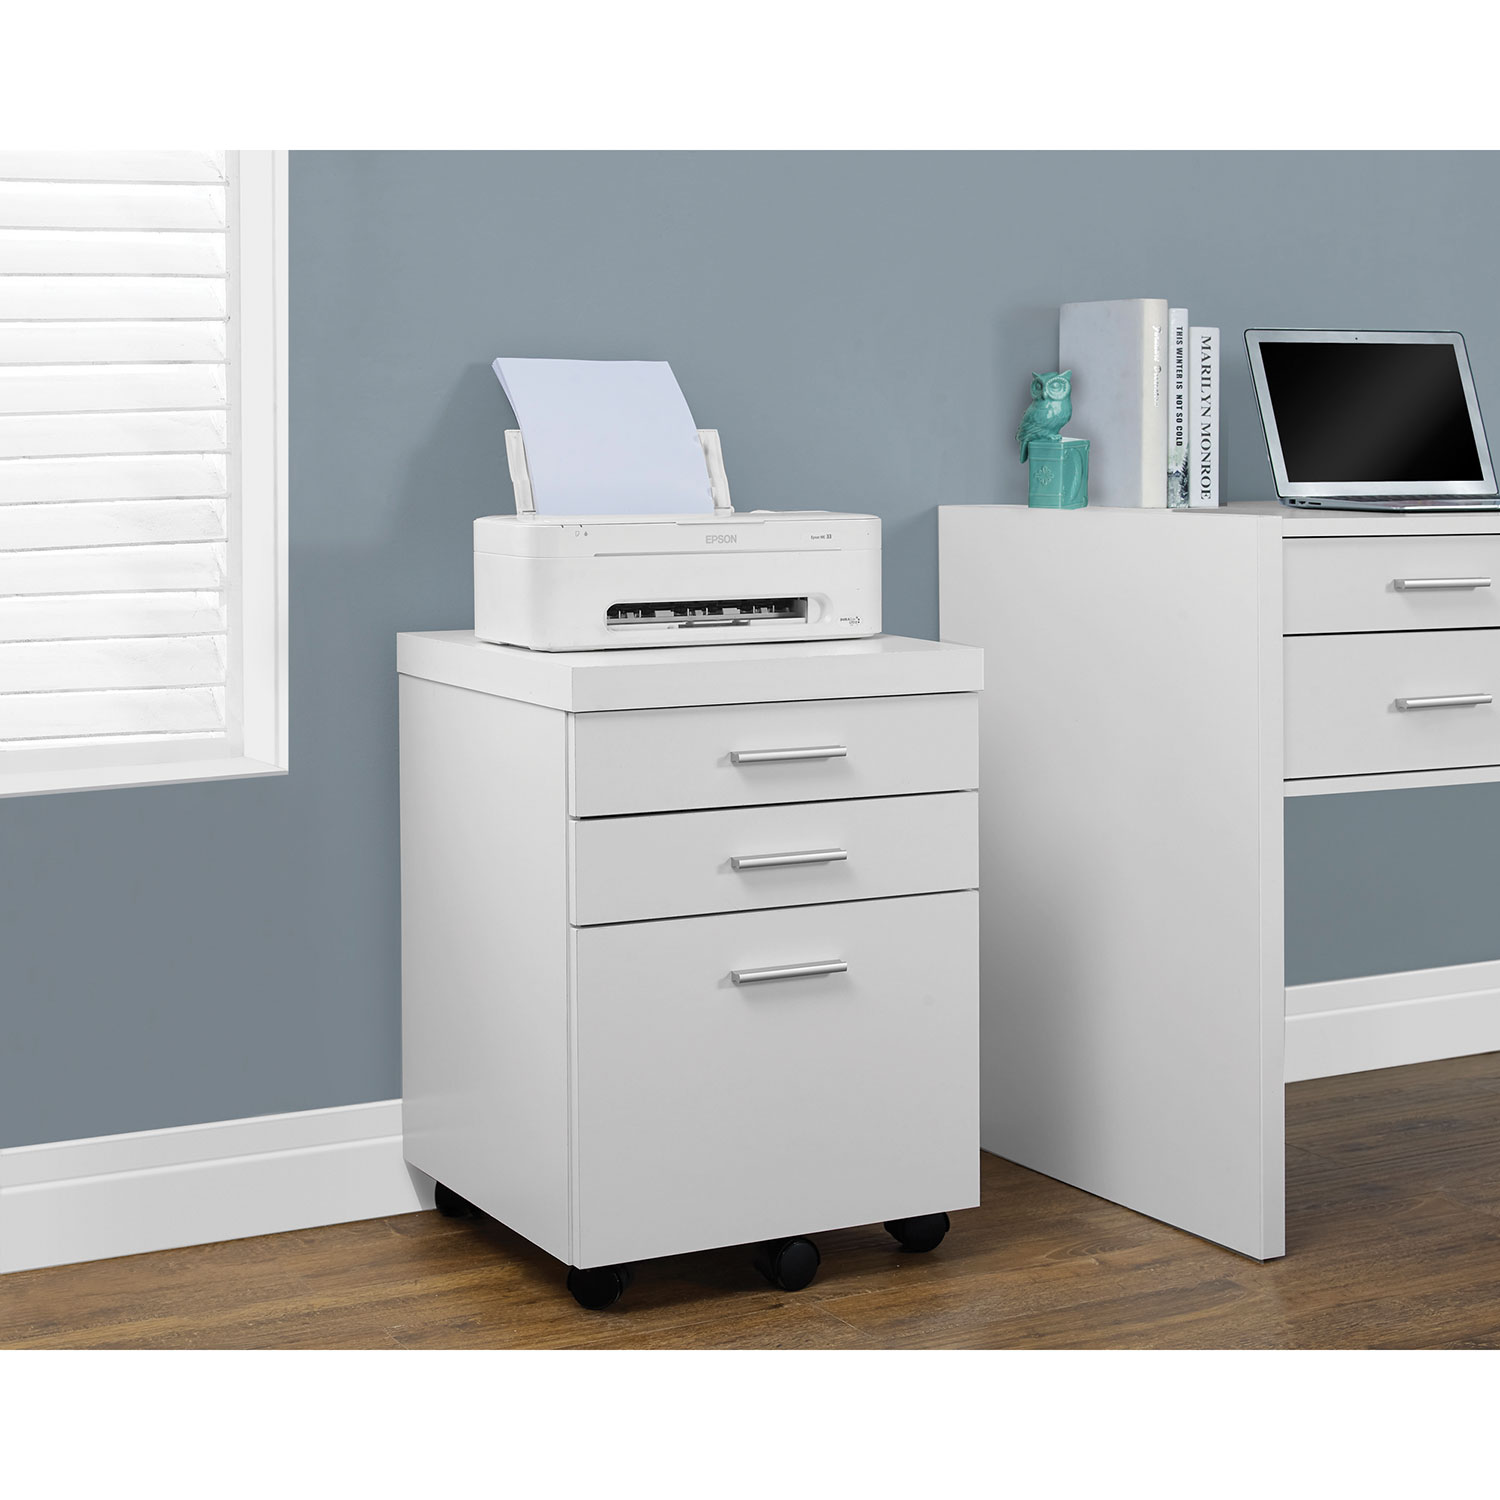 Monarch 3 Drawer Vertical File Cabinet   White : Filing Cabinets U0026 Office  Storage   Best Buy Canada